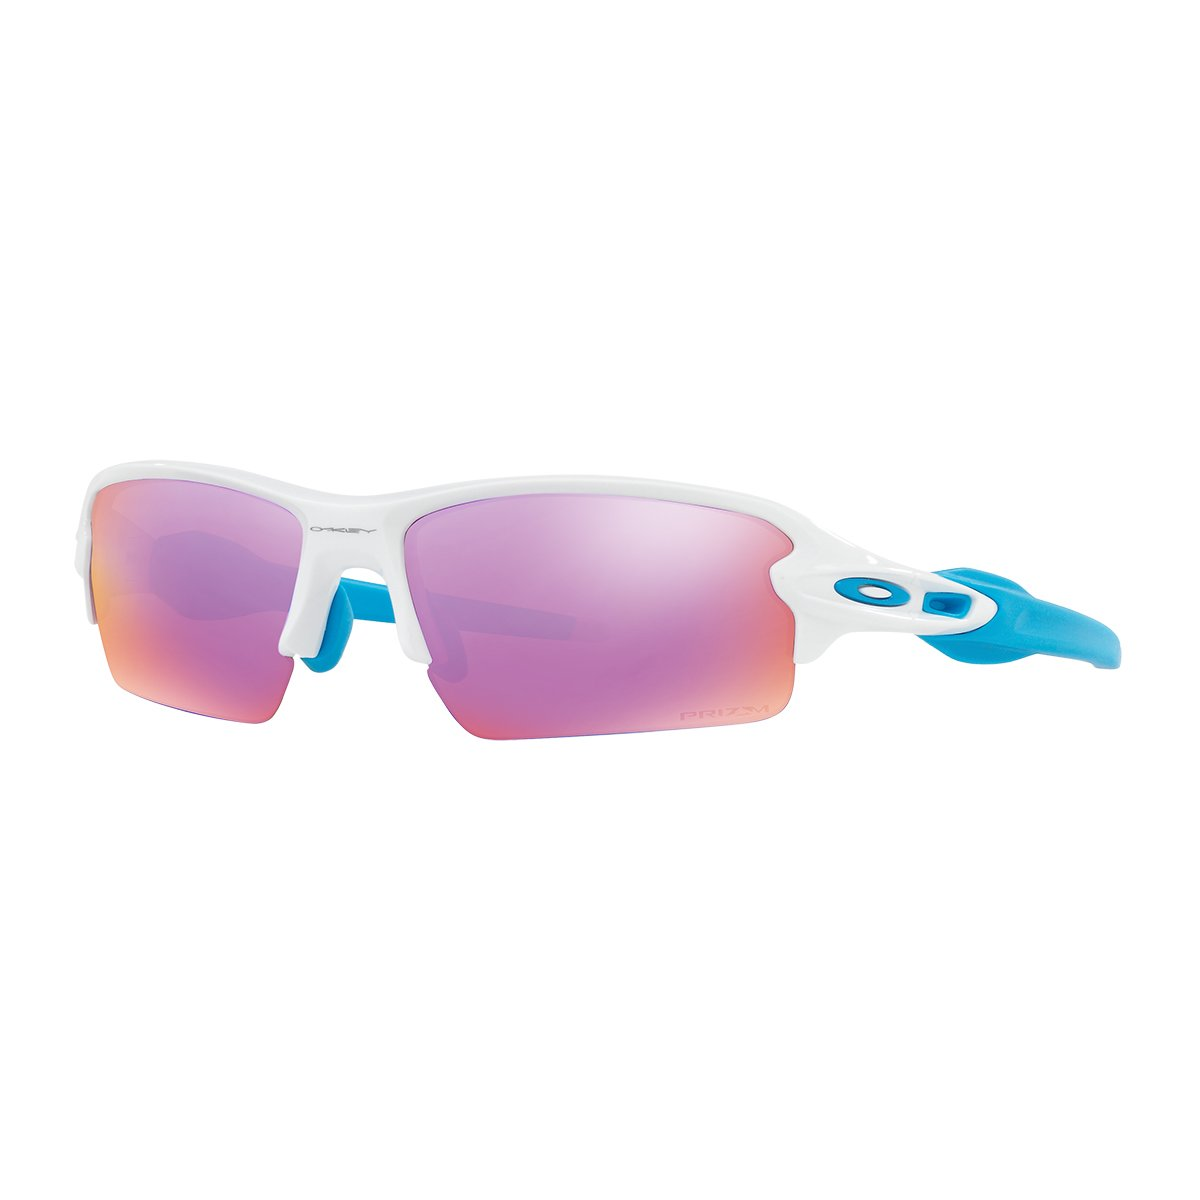 b513f350664 Amazon.com  Oakley Flak 2.0 Sunglasses White Prizm Golf  Clothing